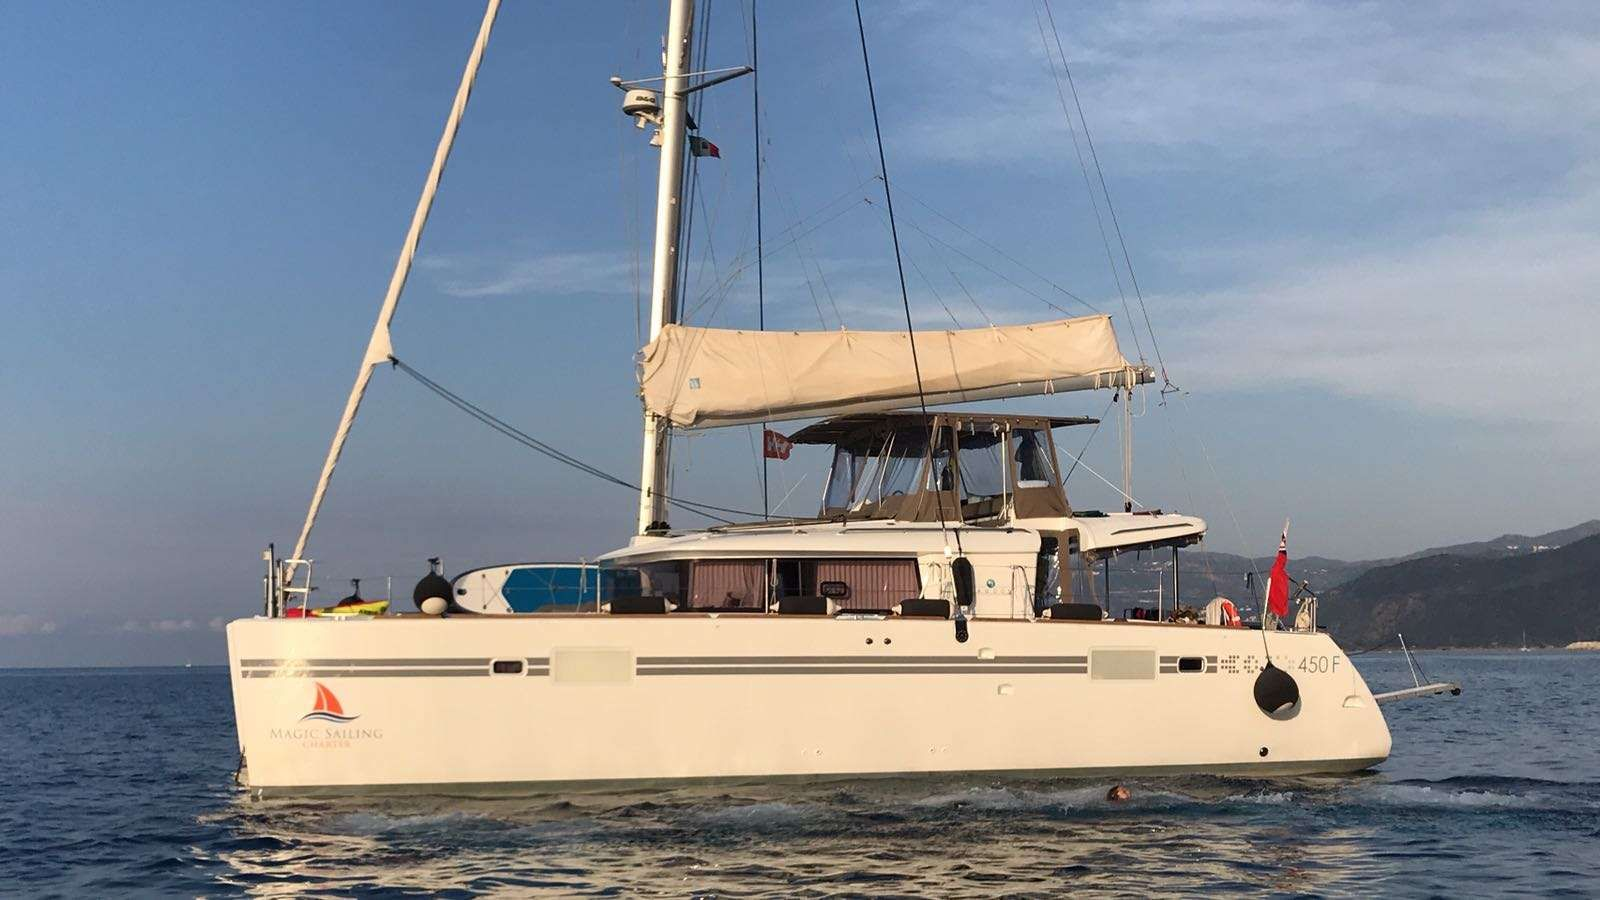 Sunshine of the sea Yacht Charter - Ritzy Charters